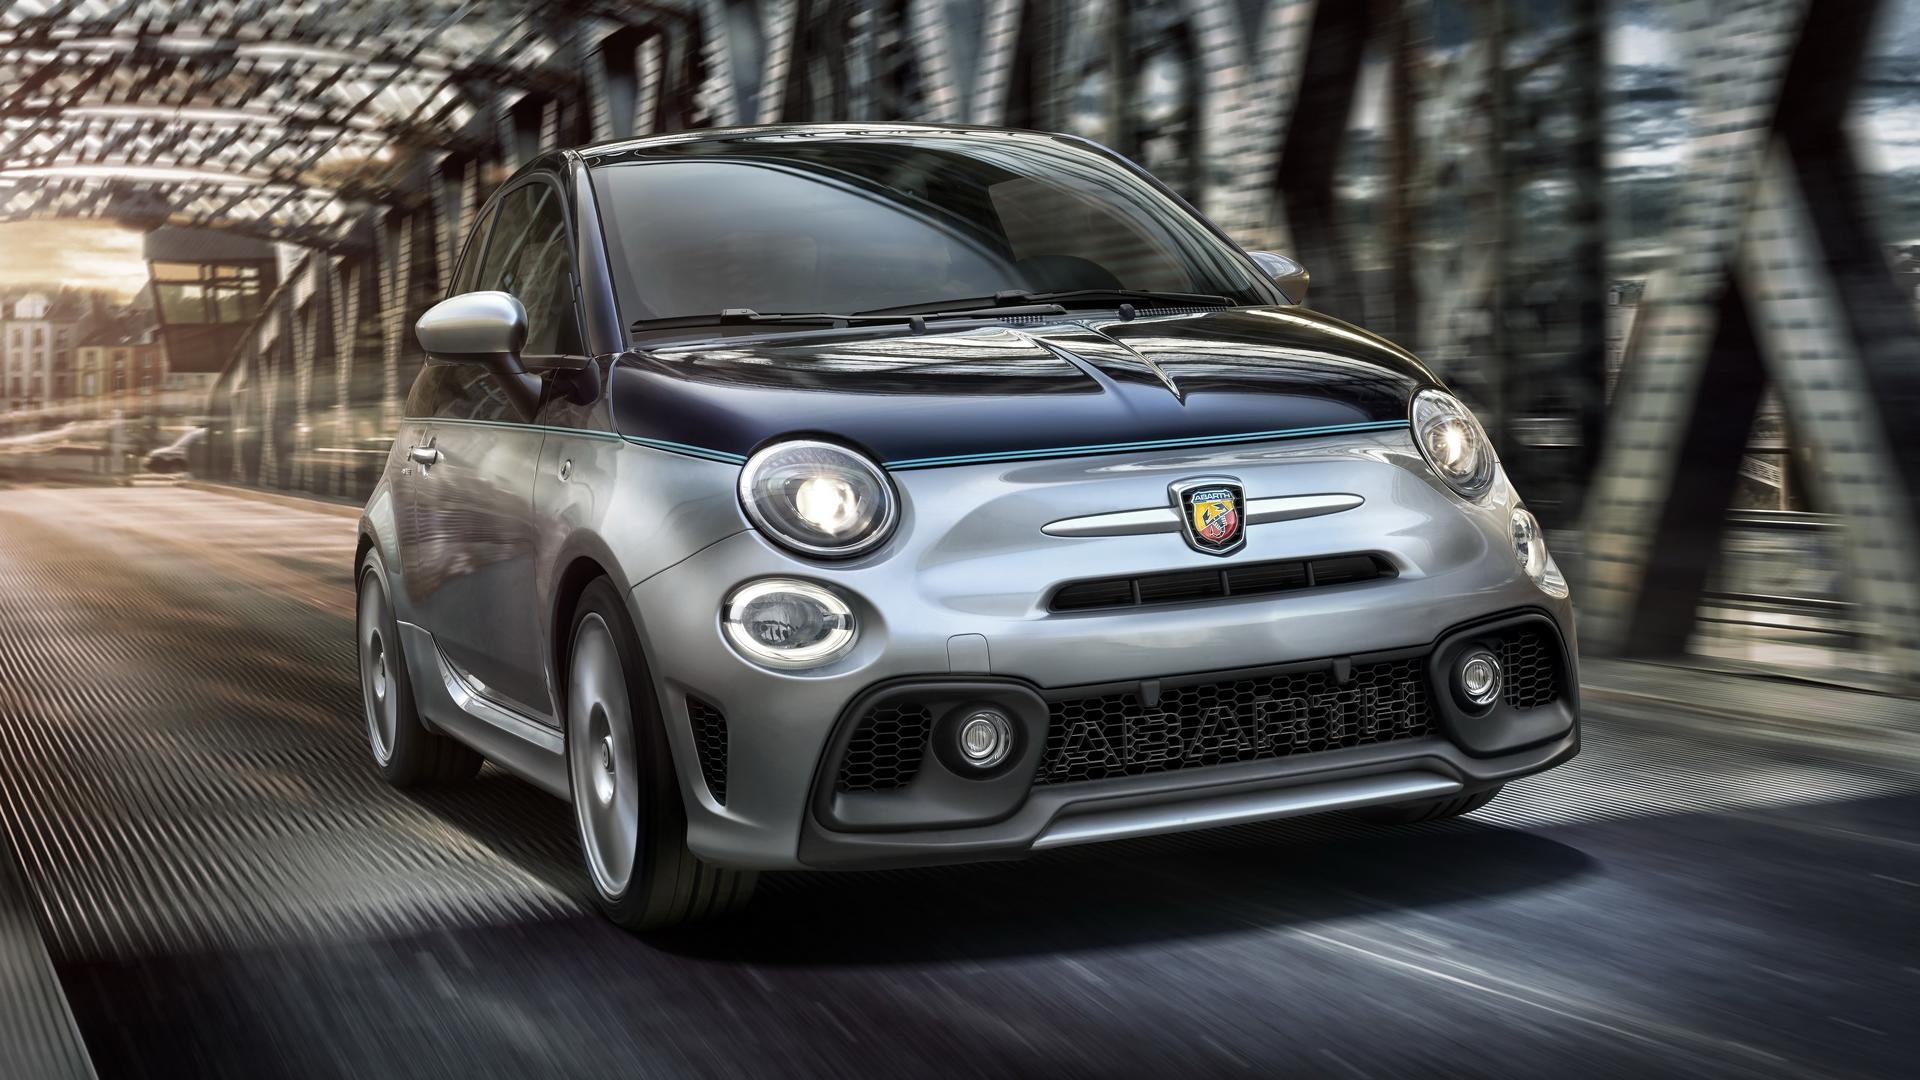 abarth 695 rivale adds a dash of elegance to 180 hp pocket rocket. Black Bedroom Furniture Sets. Home Design Ideas